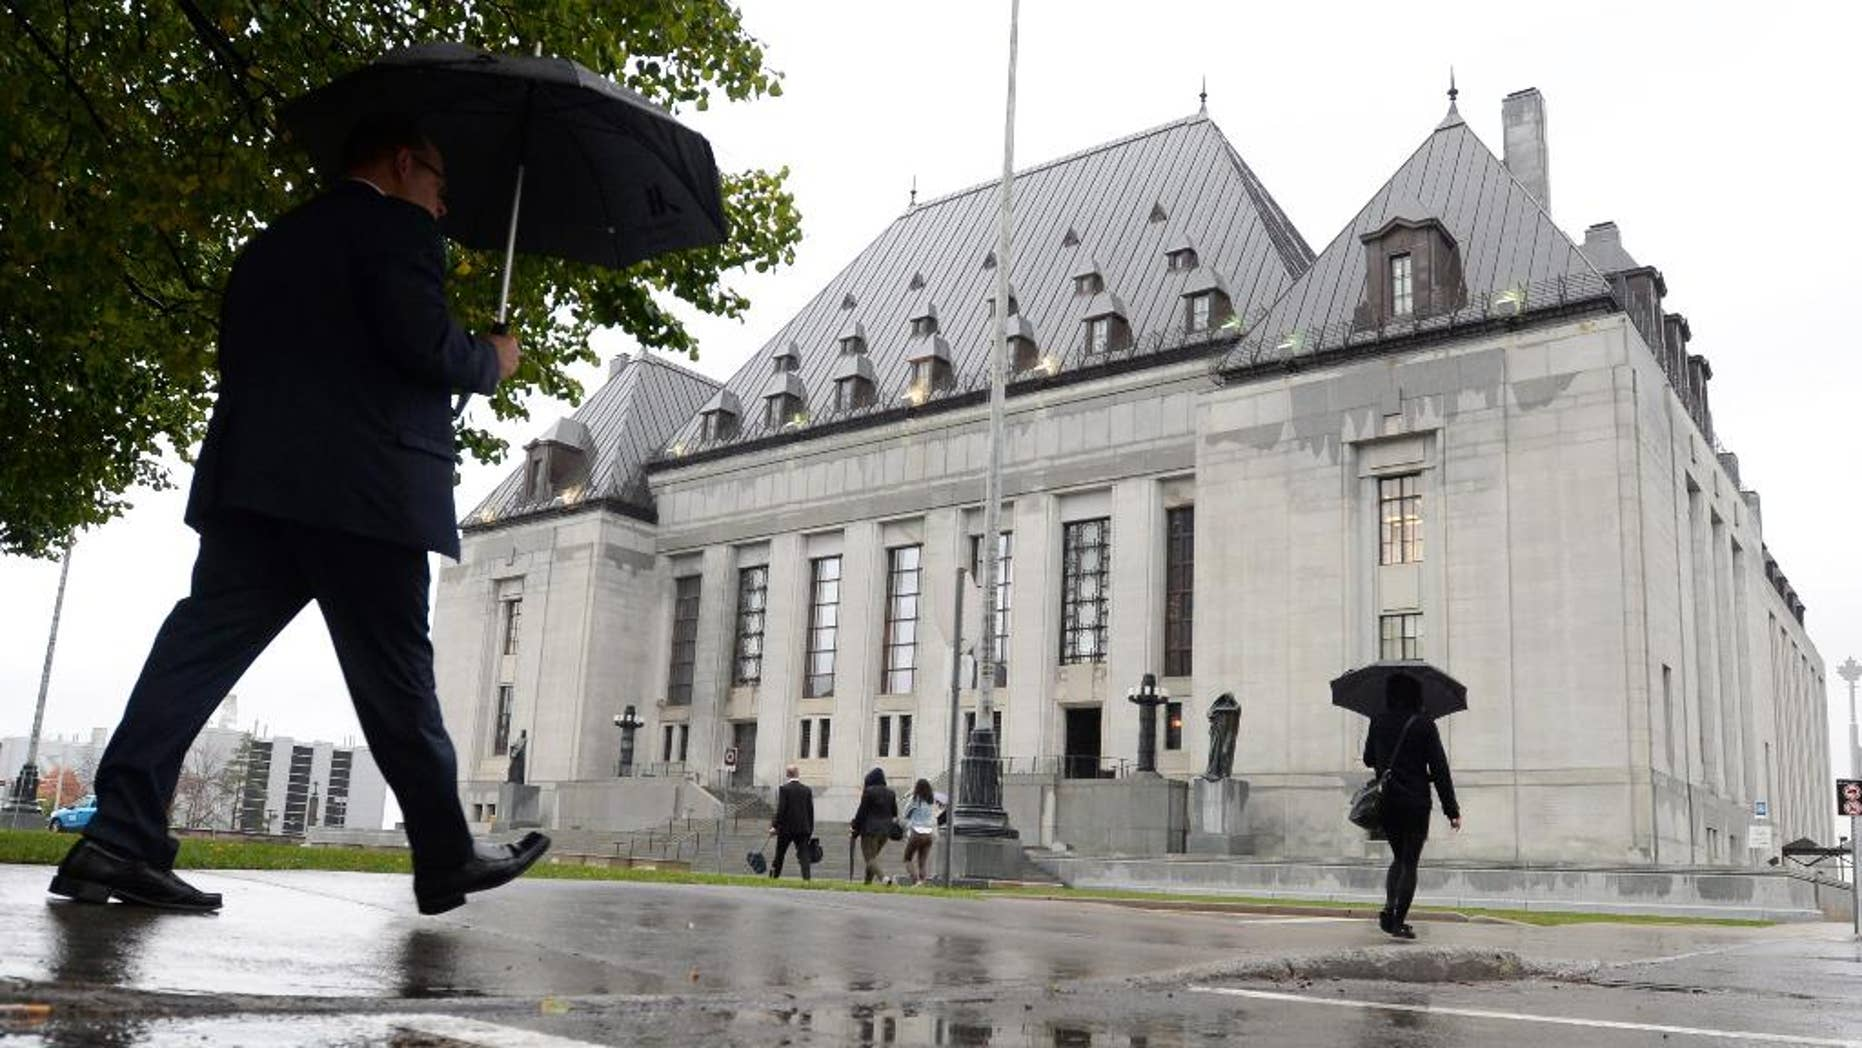 FILE - In this Oct. 15, 2014 file photo, people walk outside the Supreme Court of Canada in Ottawa, Ontario.  Canadian police can conduct a limited search of a suspect's mobile phone when they are arrested without getting a search warrant, but they must follow strict rules, a divided Supreme Court of Canada ruled Thursday, Dec. 11, 2014. In a 4-3 decision, Canada's top court said the search must be directly related to the circumstances of a person's arrest and police must keep detailed records of the search. (AP Photo/The Canadian Press, Sean Kilpatrick)